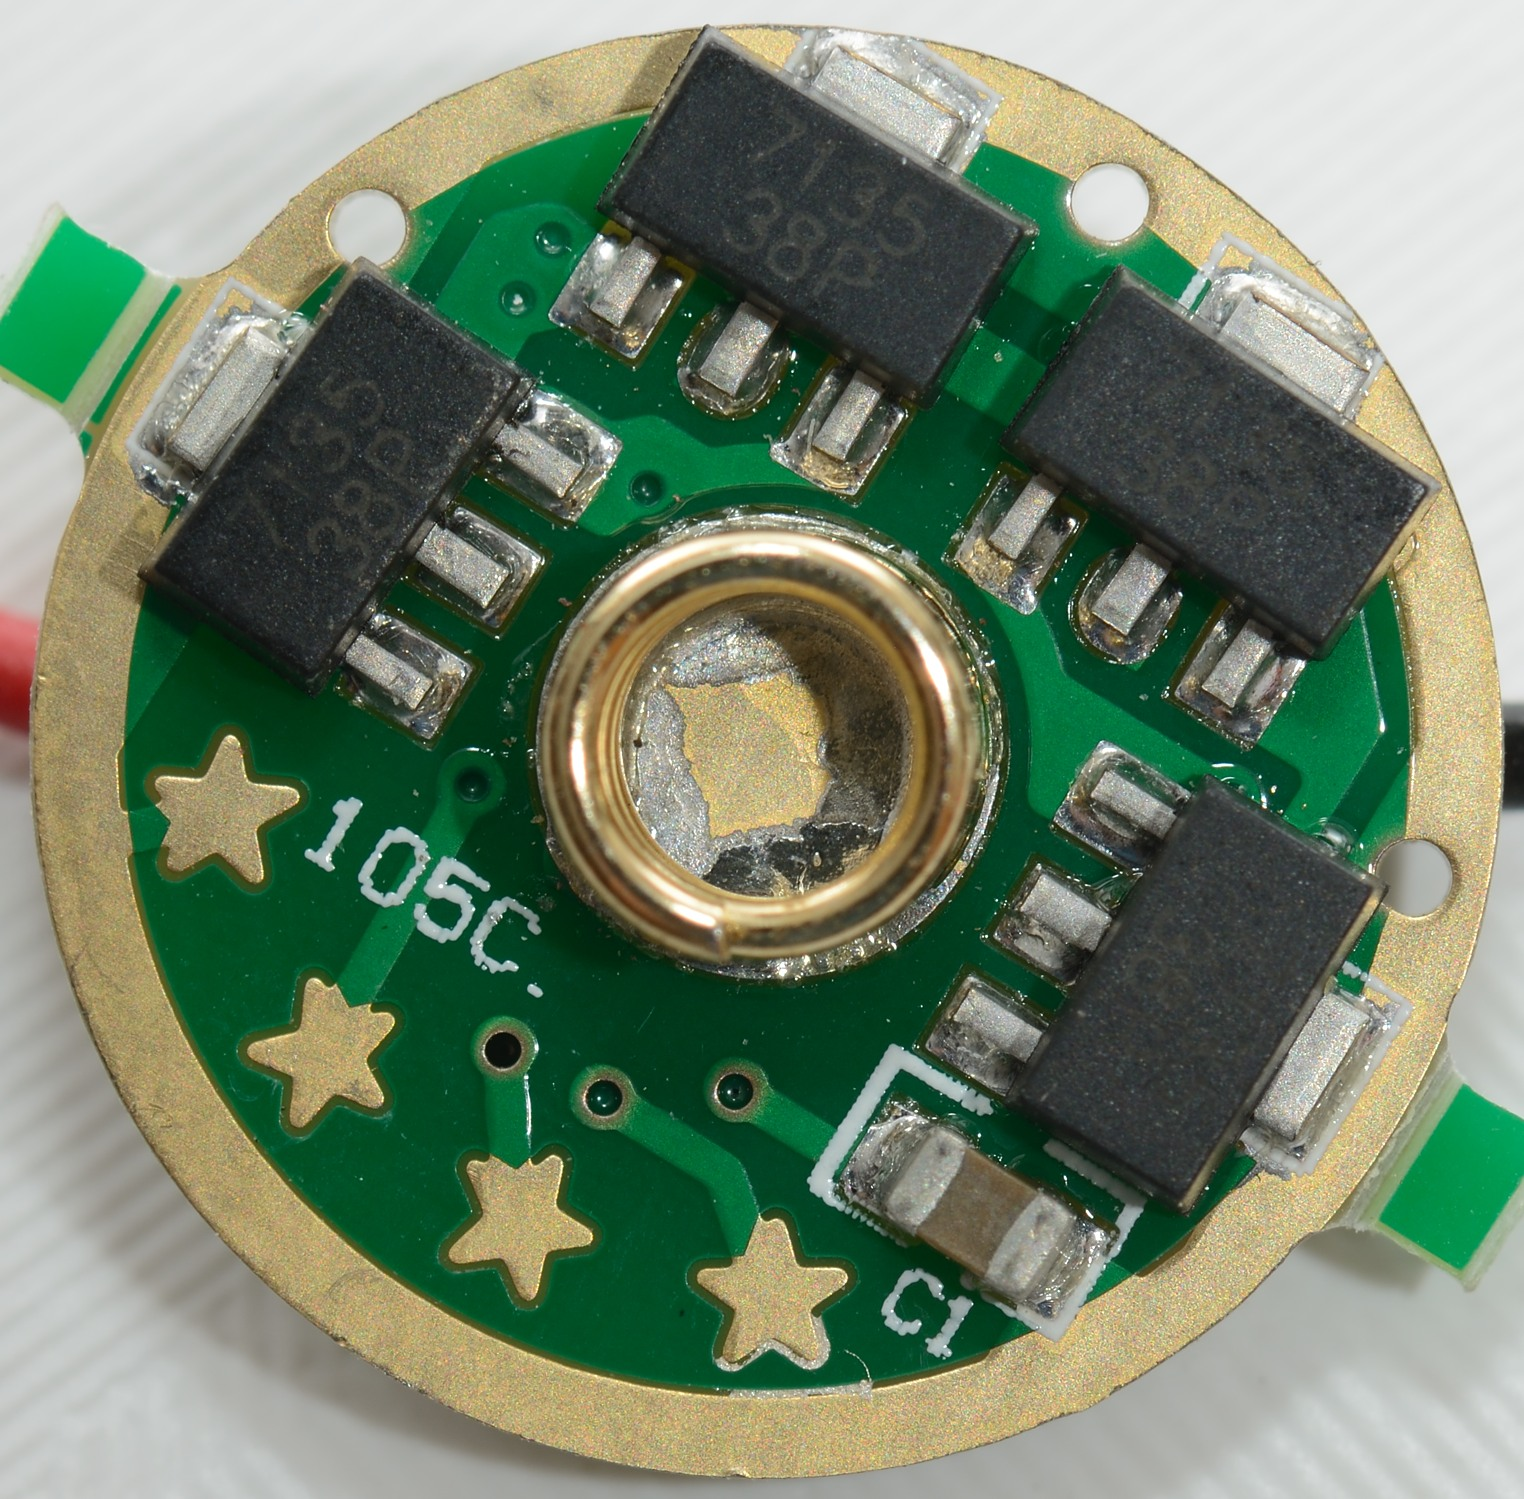 Test Review Of Qlite Reva 71358 Multiple Modes Circuit Board 304a Gold Plated